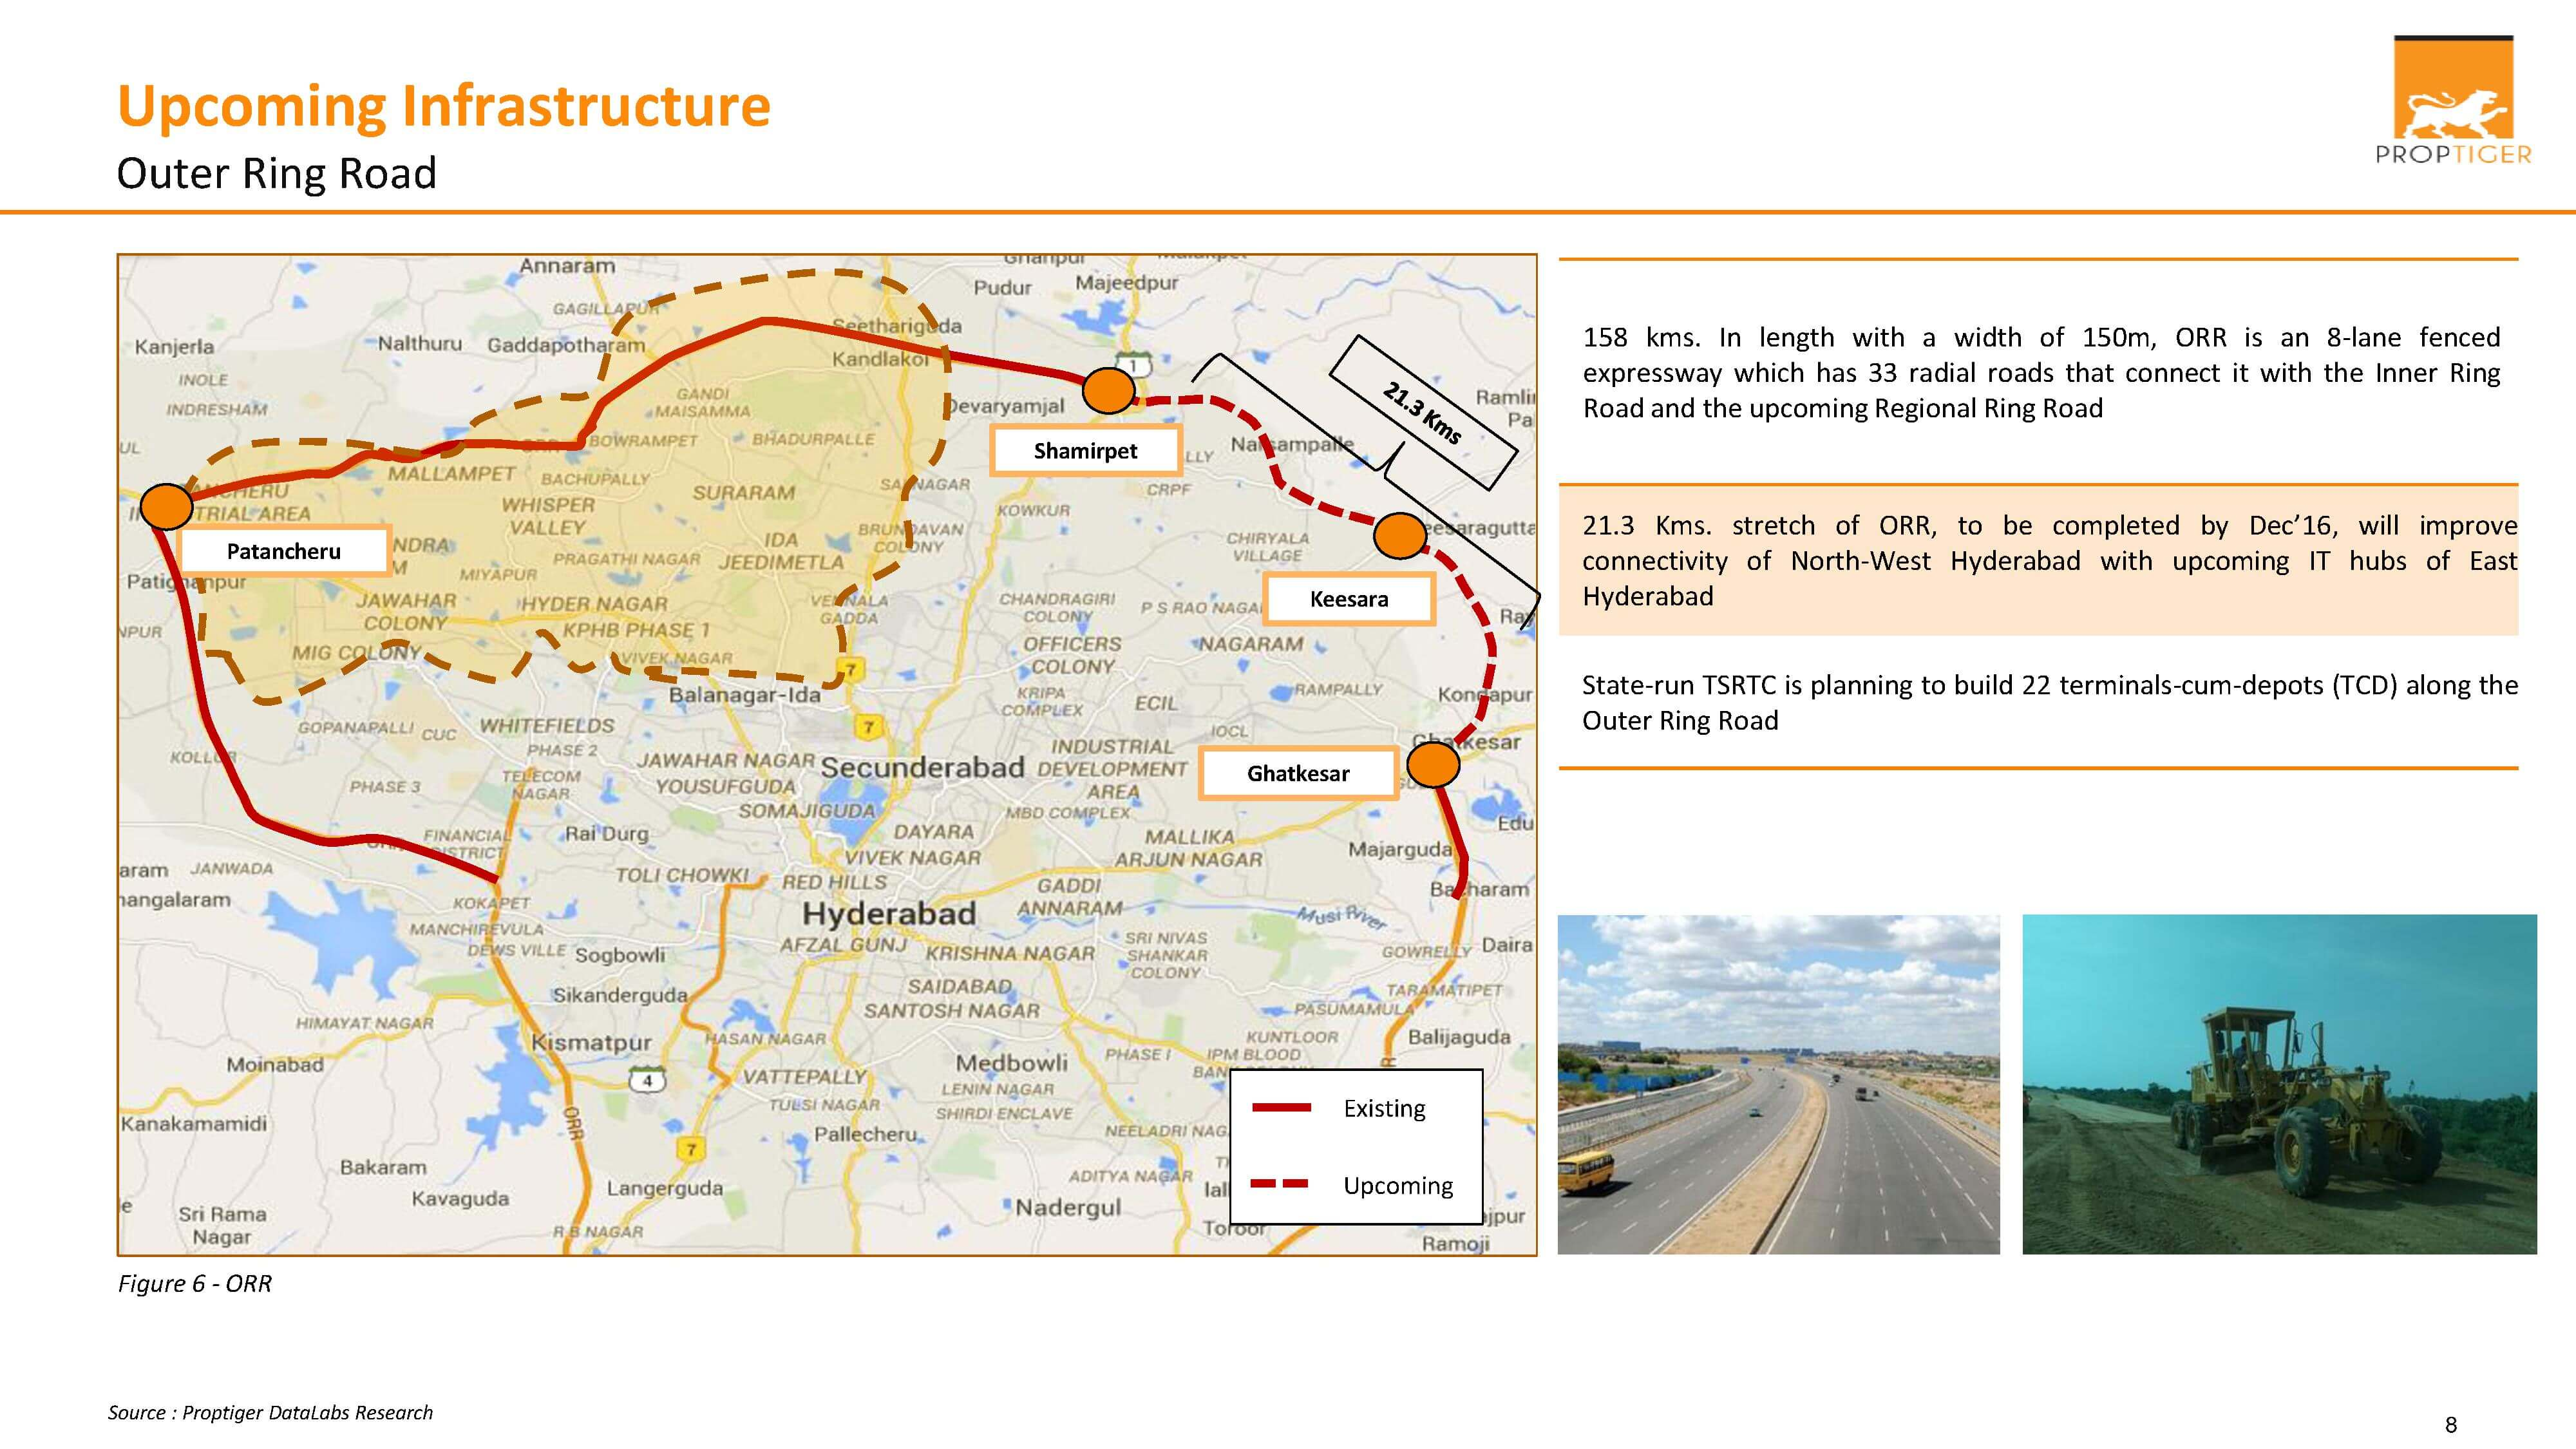 Upcoming Infrastructure - Outer Ring Road